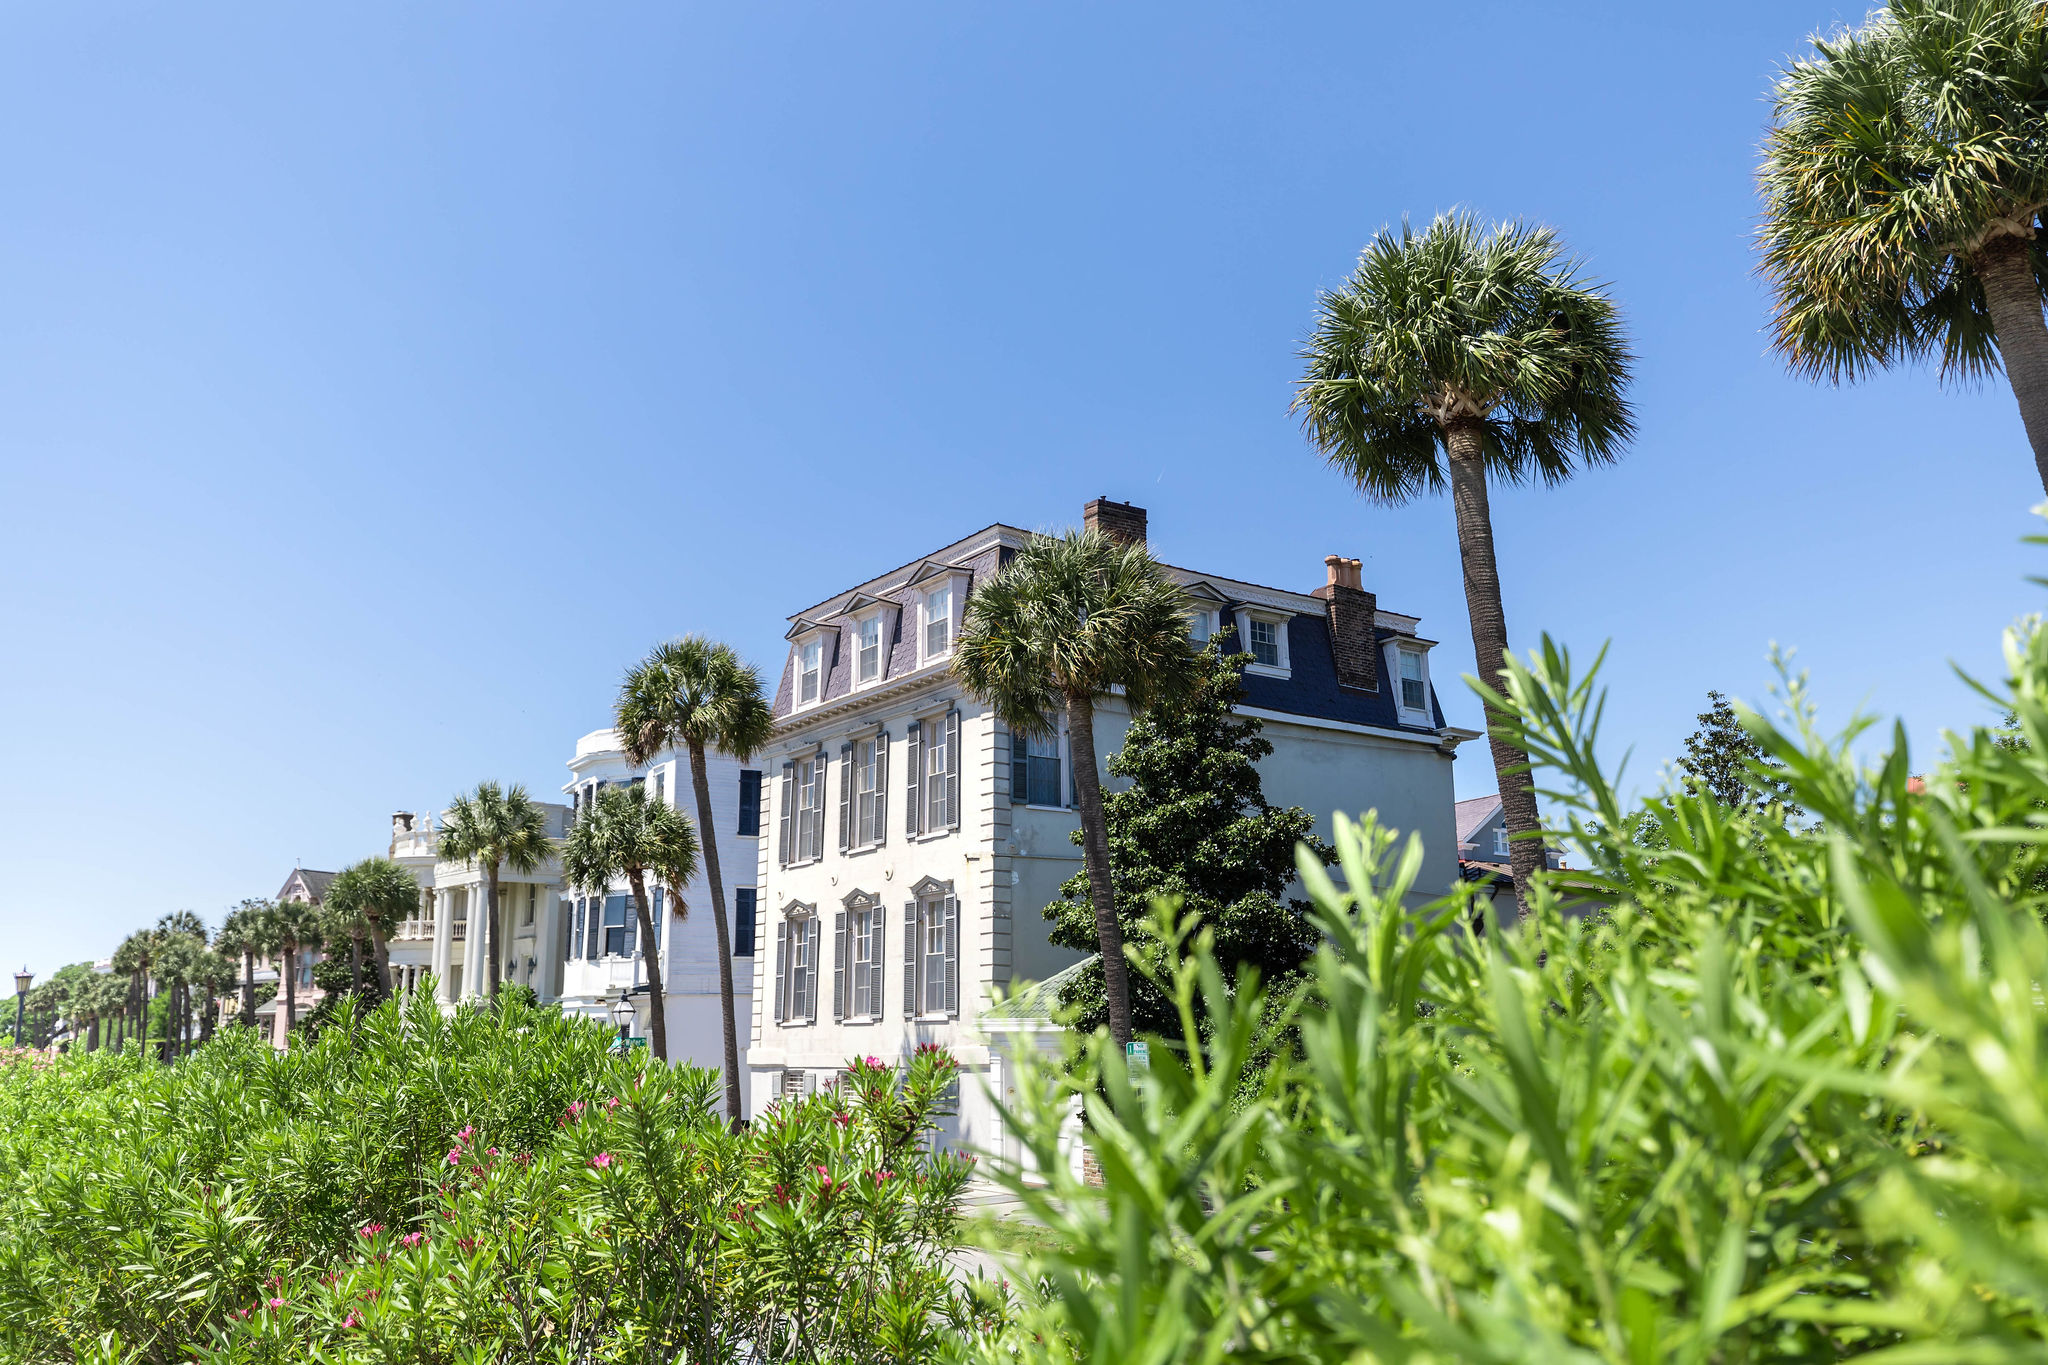 Homes Along the Water Charleston Harbor Beautiful Homes of The Holy City Charleston Luxury Travel Guide by Photographer Annie Fairfax South Carolina Vacation Ideas and Honeymoon Inspiration